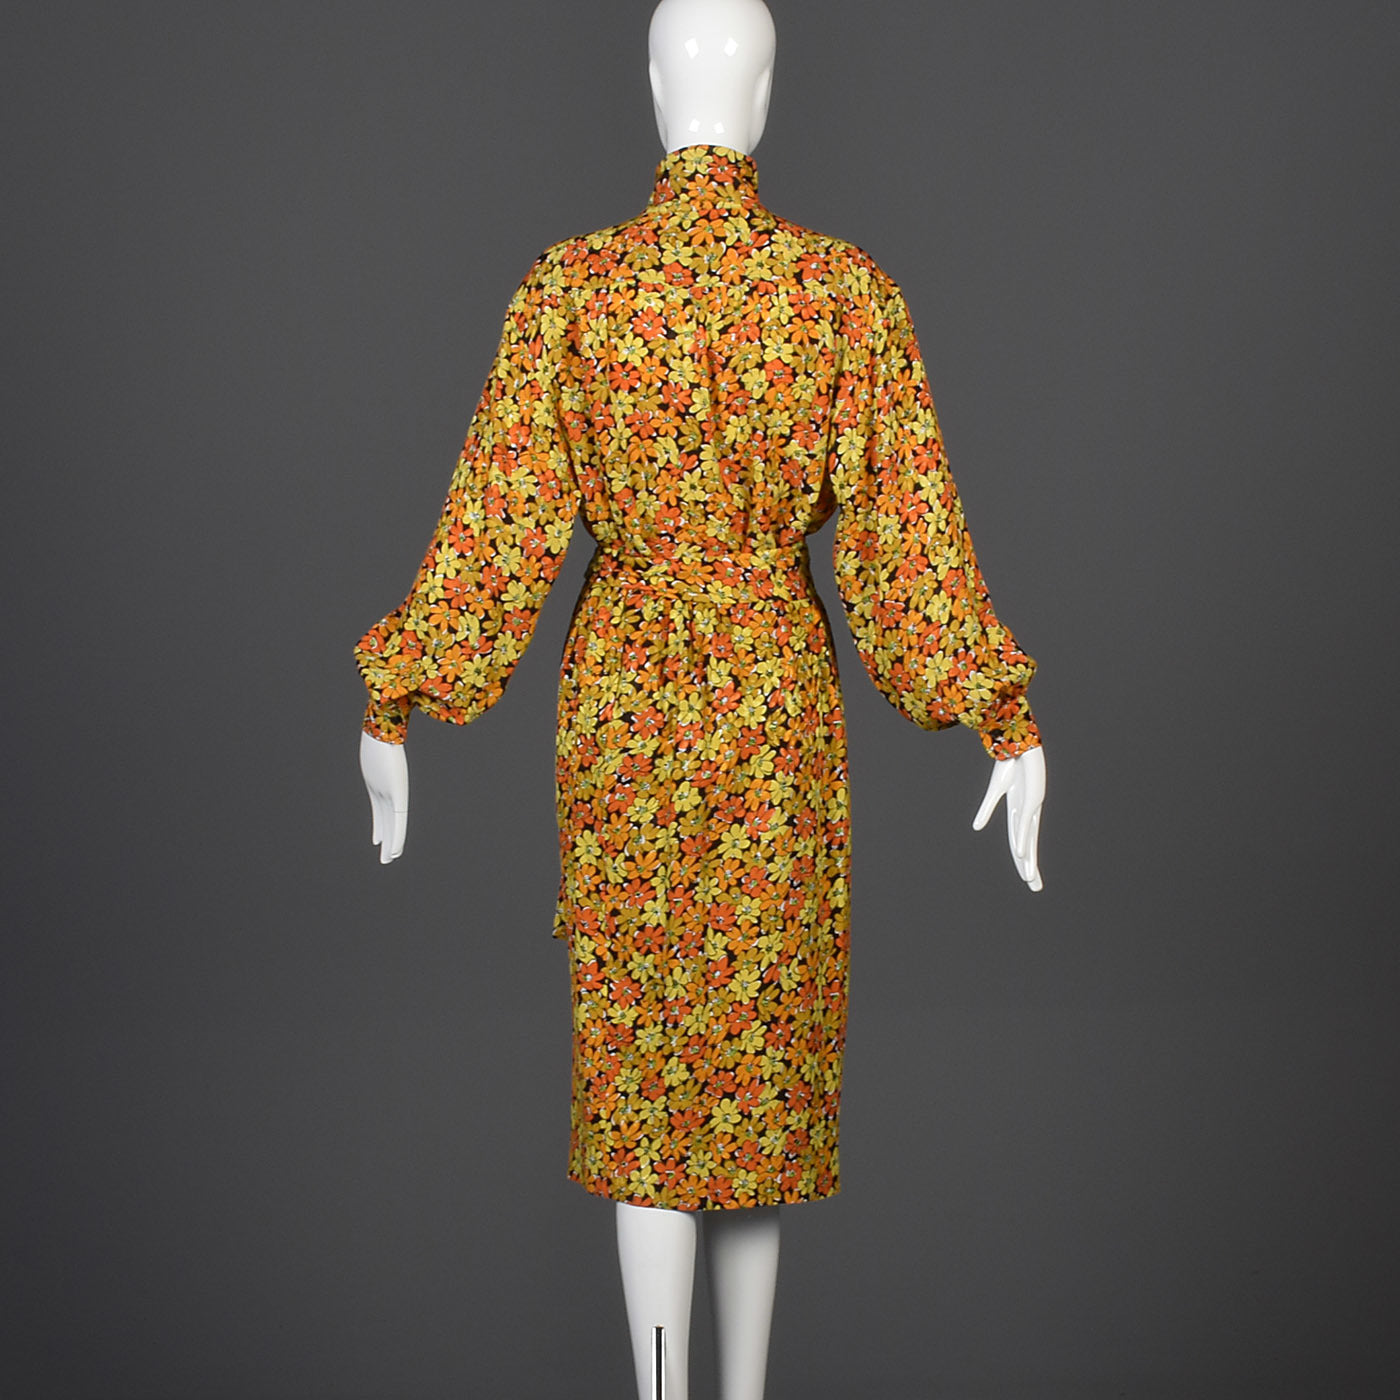 Yves Saint Laurent Rive Gauche Silk Separates in a Daisy Print